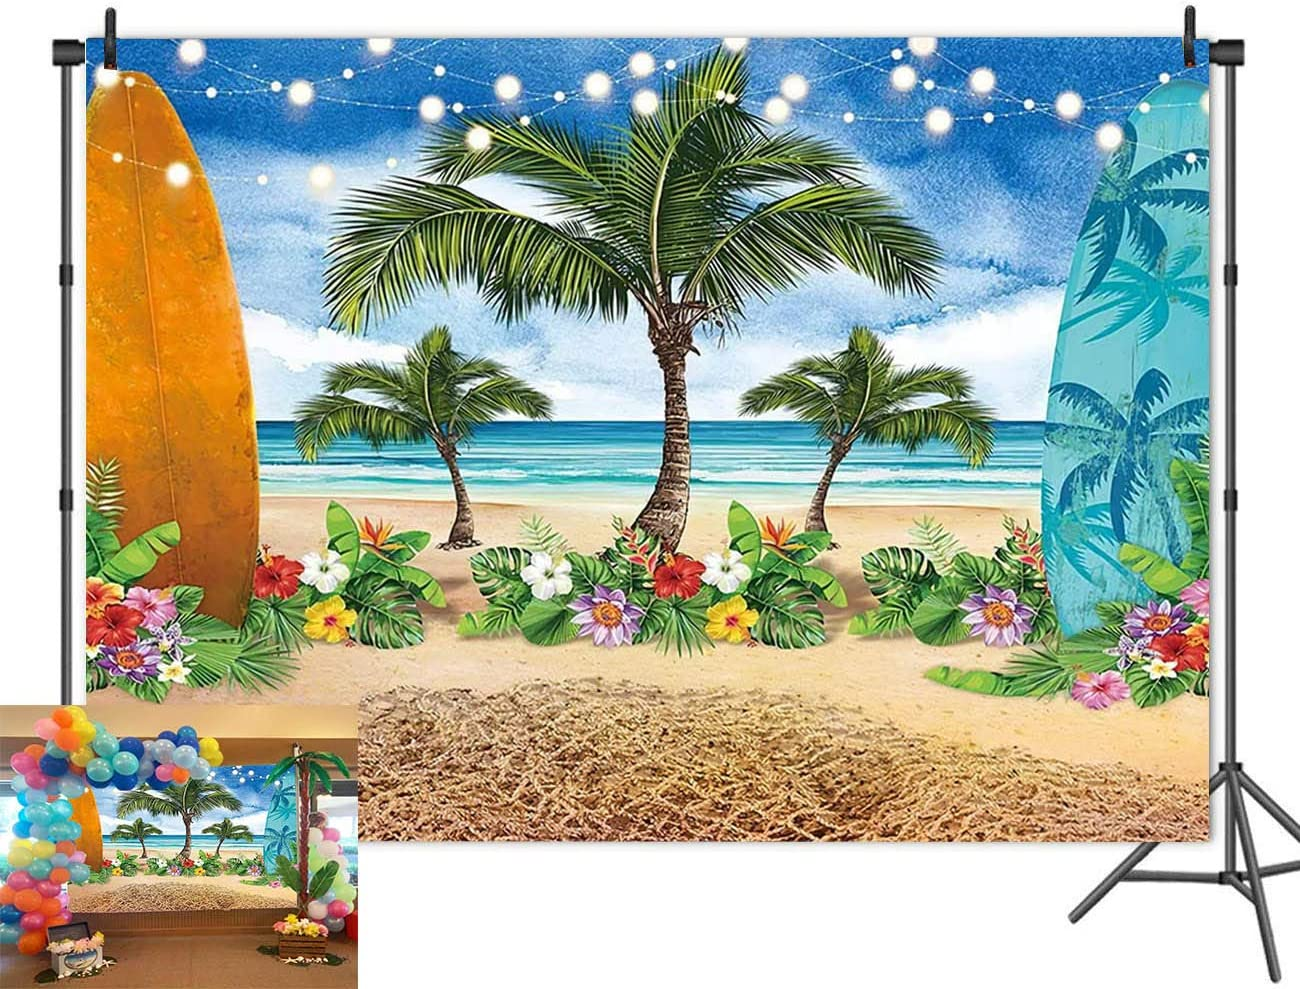 6x6FT Vinyl Backdrop Photographer,Hawaiian,Tropic Silhouette Trees Background for Baby Birthday Party Wedding Graduation Home Decoration